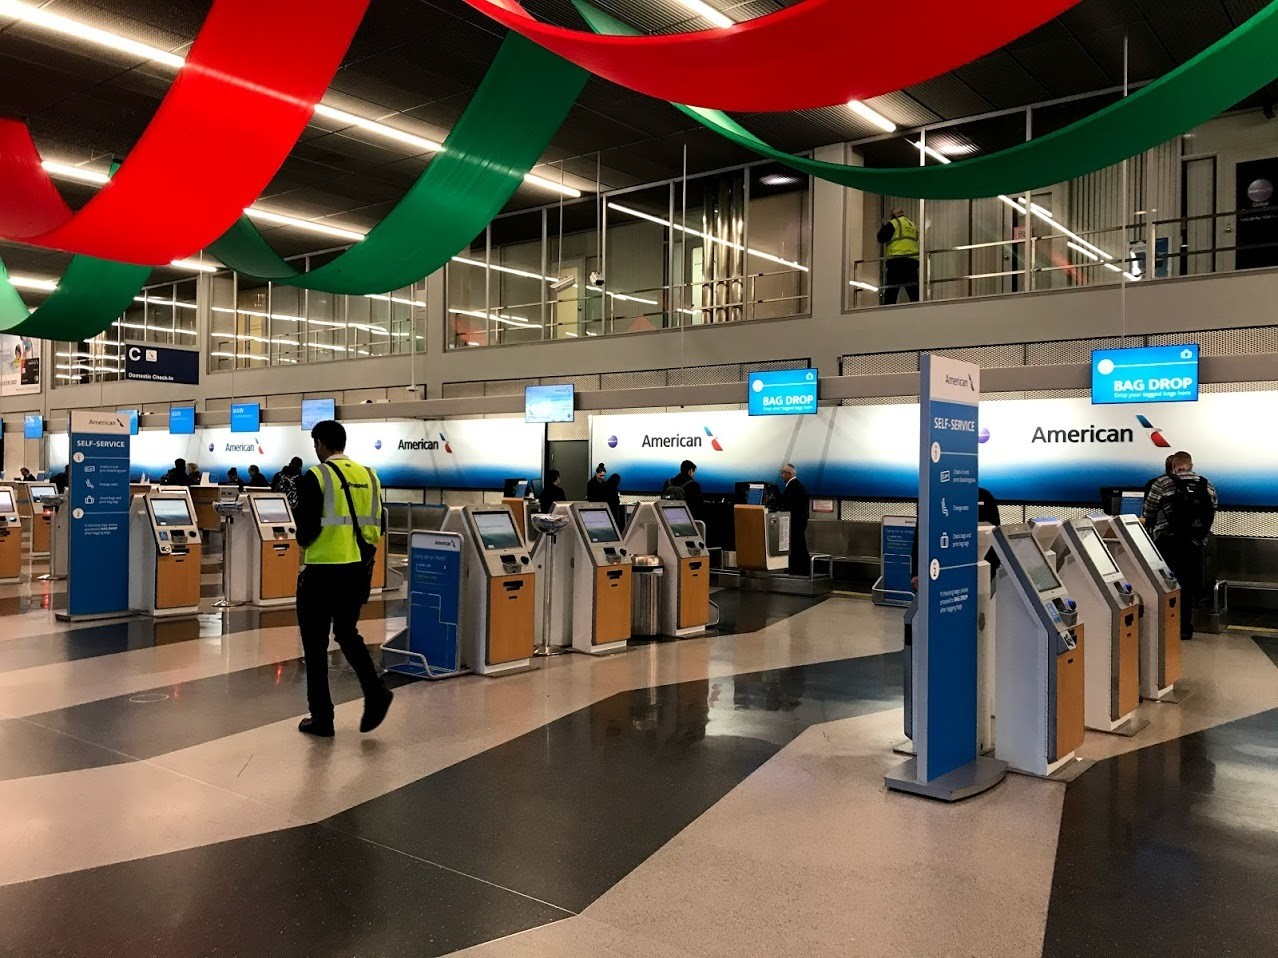 American Airlines Check In Kiosk Chicago Ohare